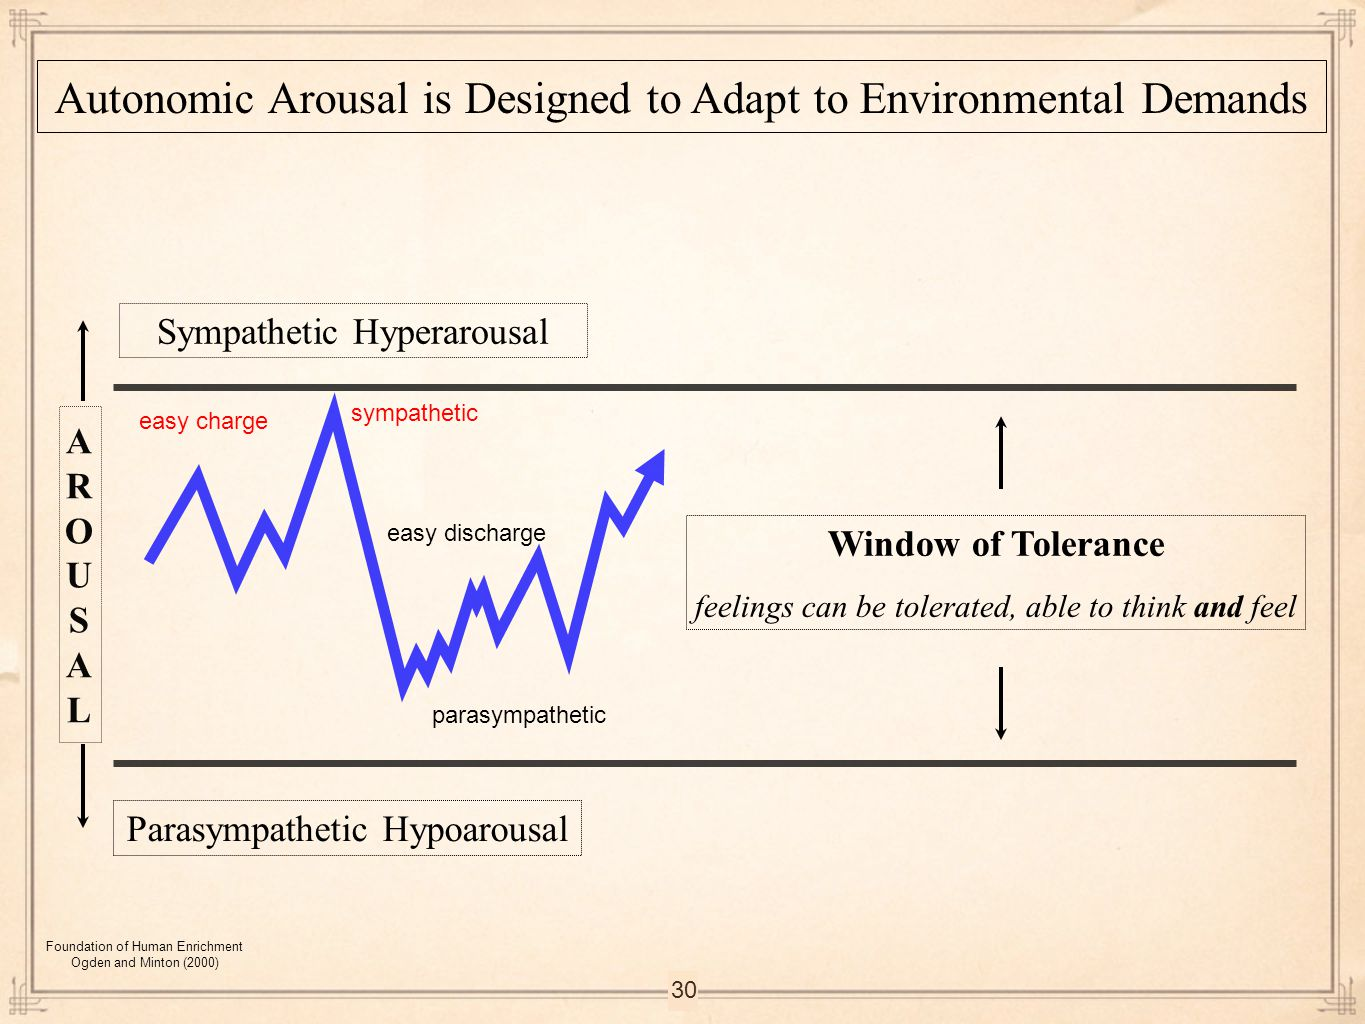 Autonomic Arousal is Designed to Adapt to Environmental Demands